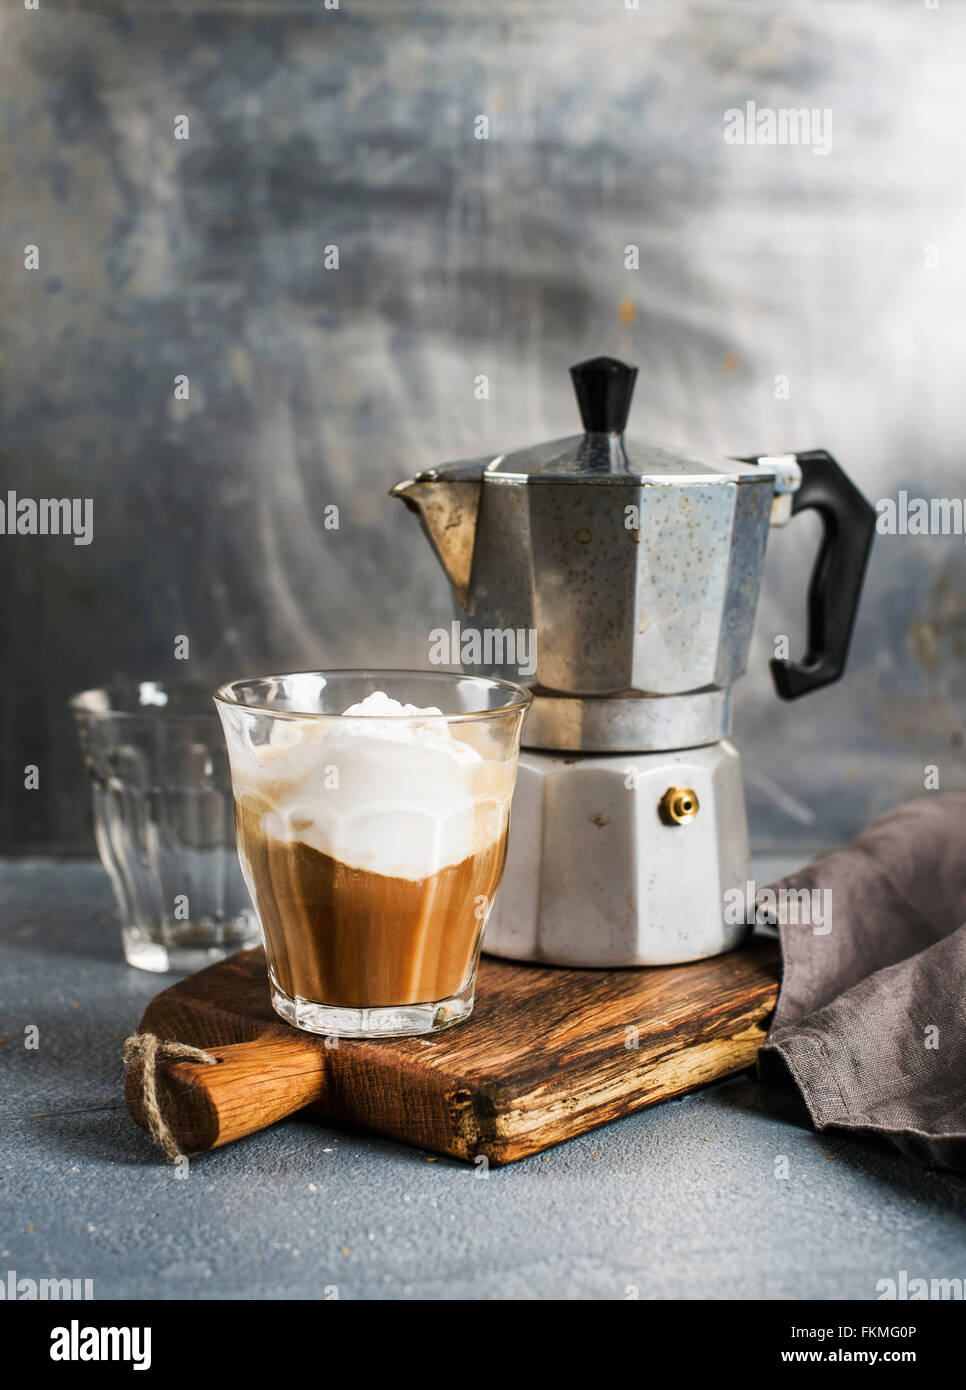 A glass of coffee with ice cream and steel moka pot on on rustic wooden board. Grey beckground, selective focus - Stock Image